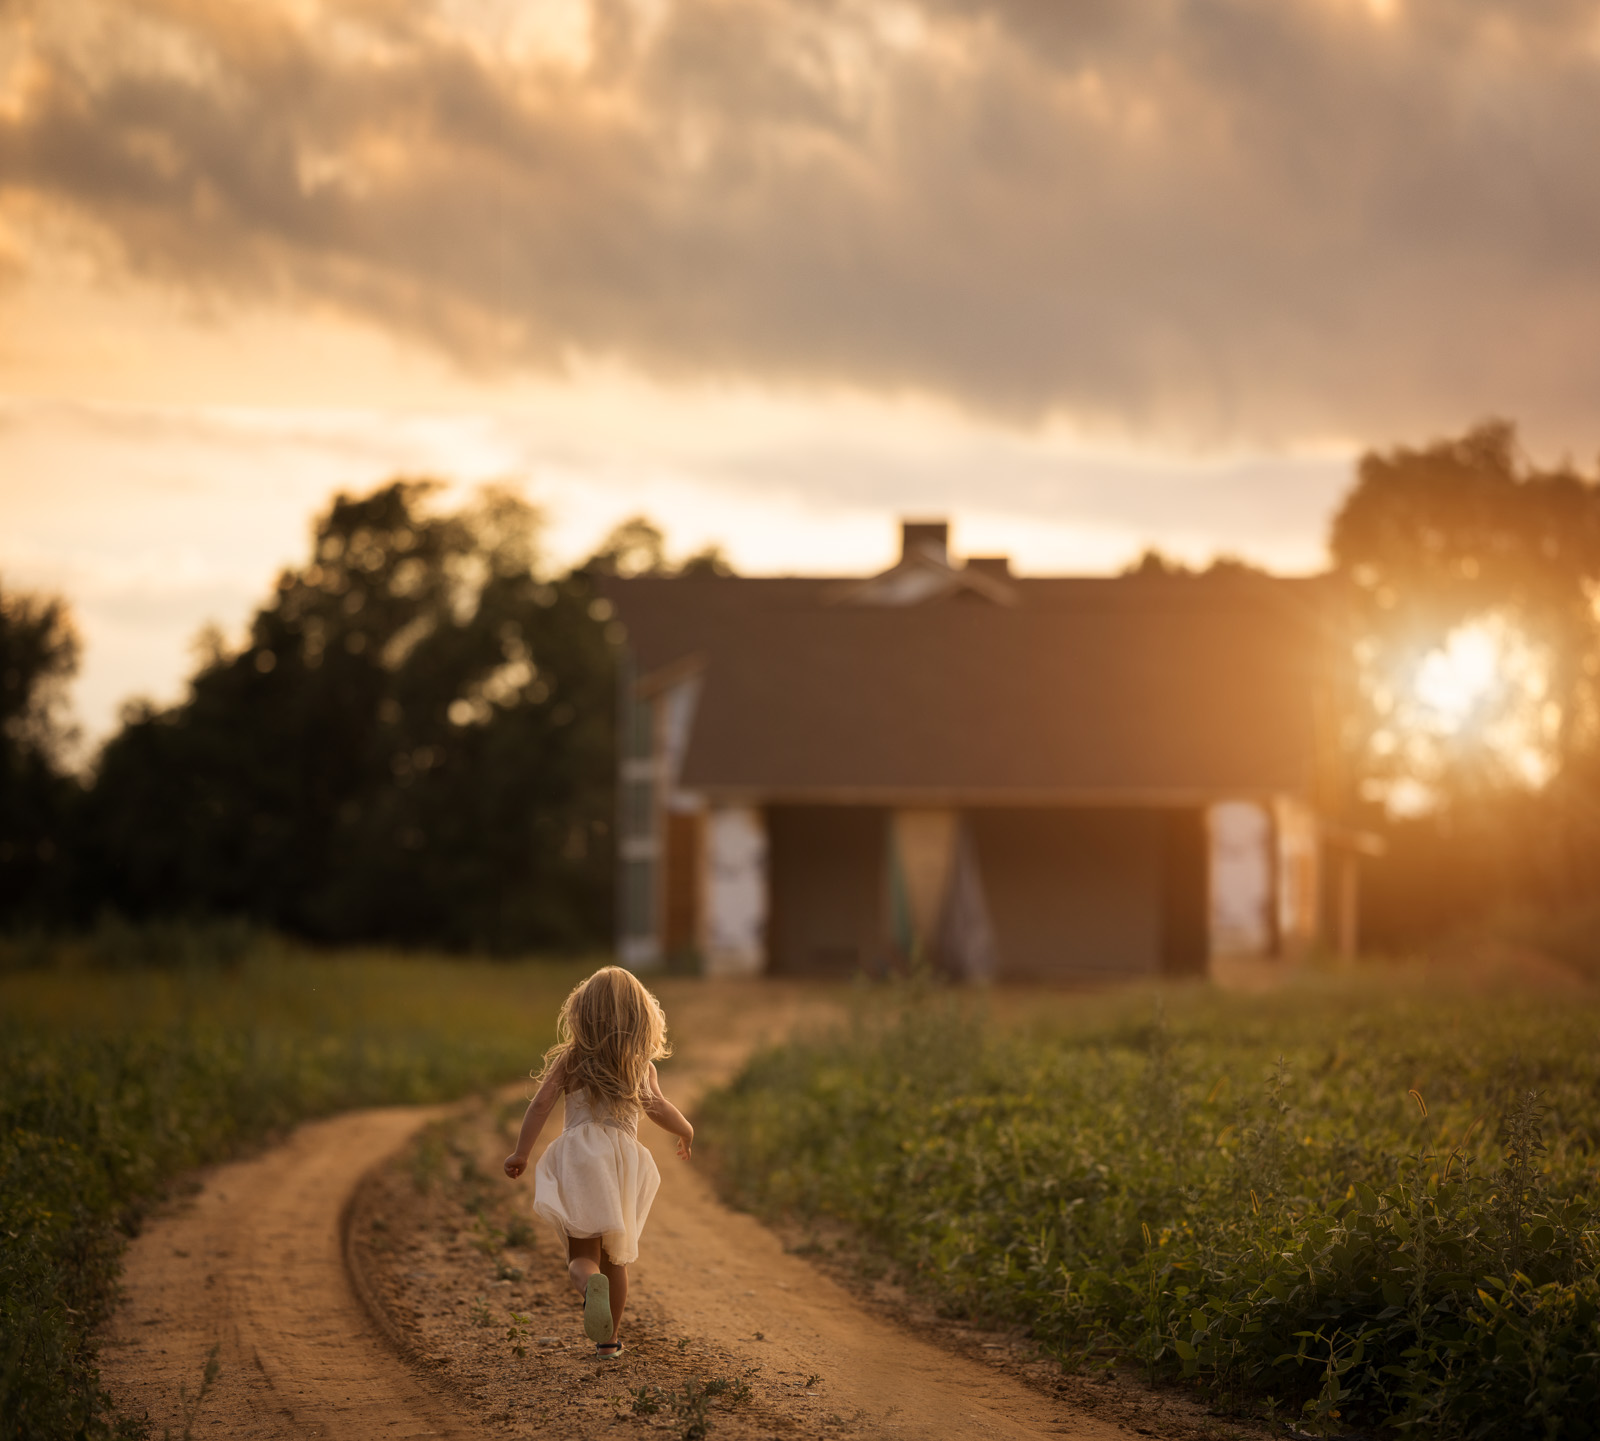 photo of girl running in the country by Danielle Awwad